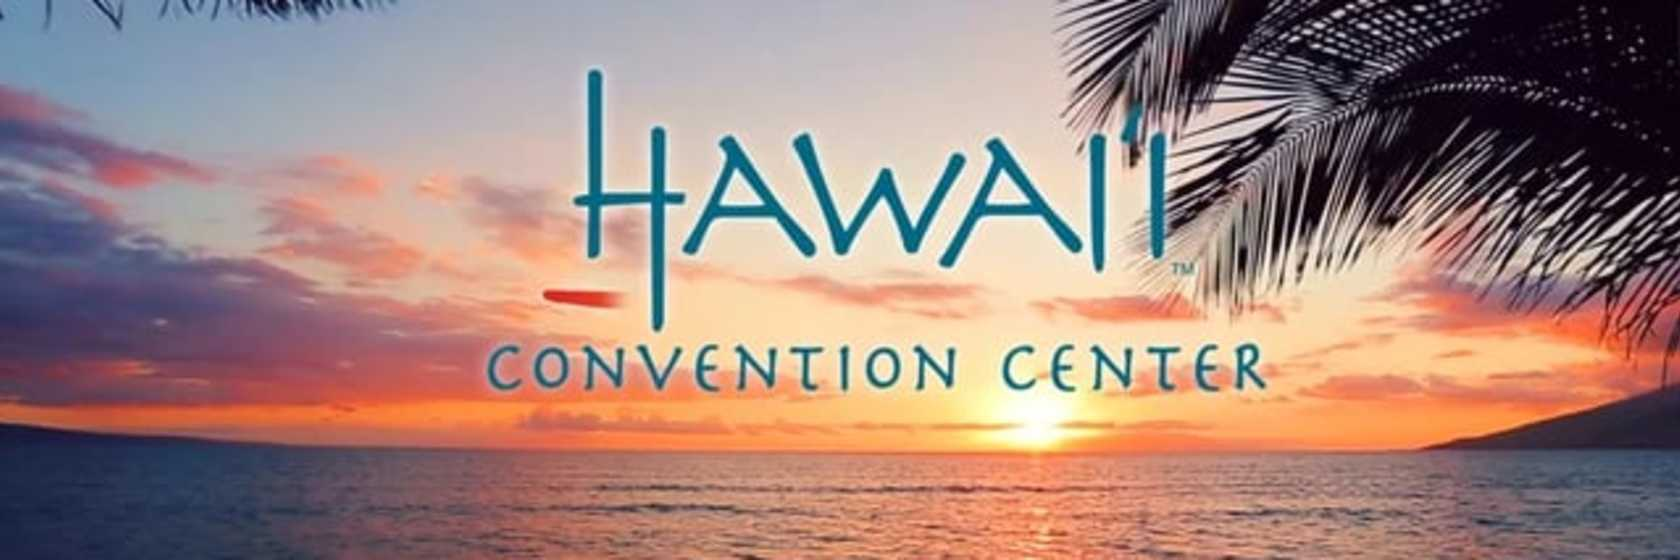 Hawaii Convention Center Sizzle Video